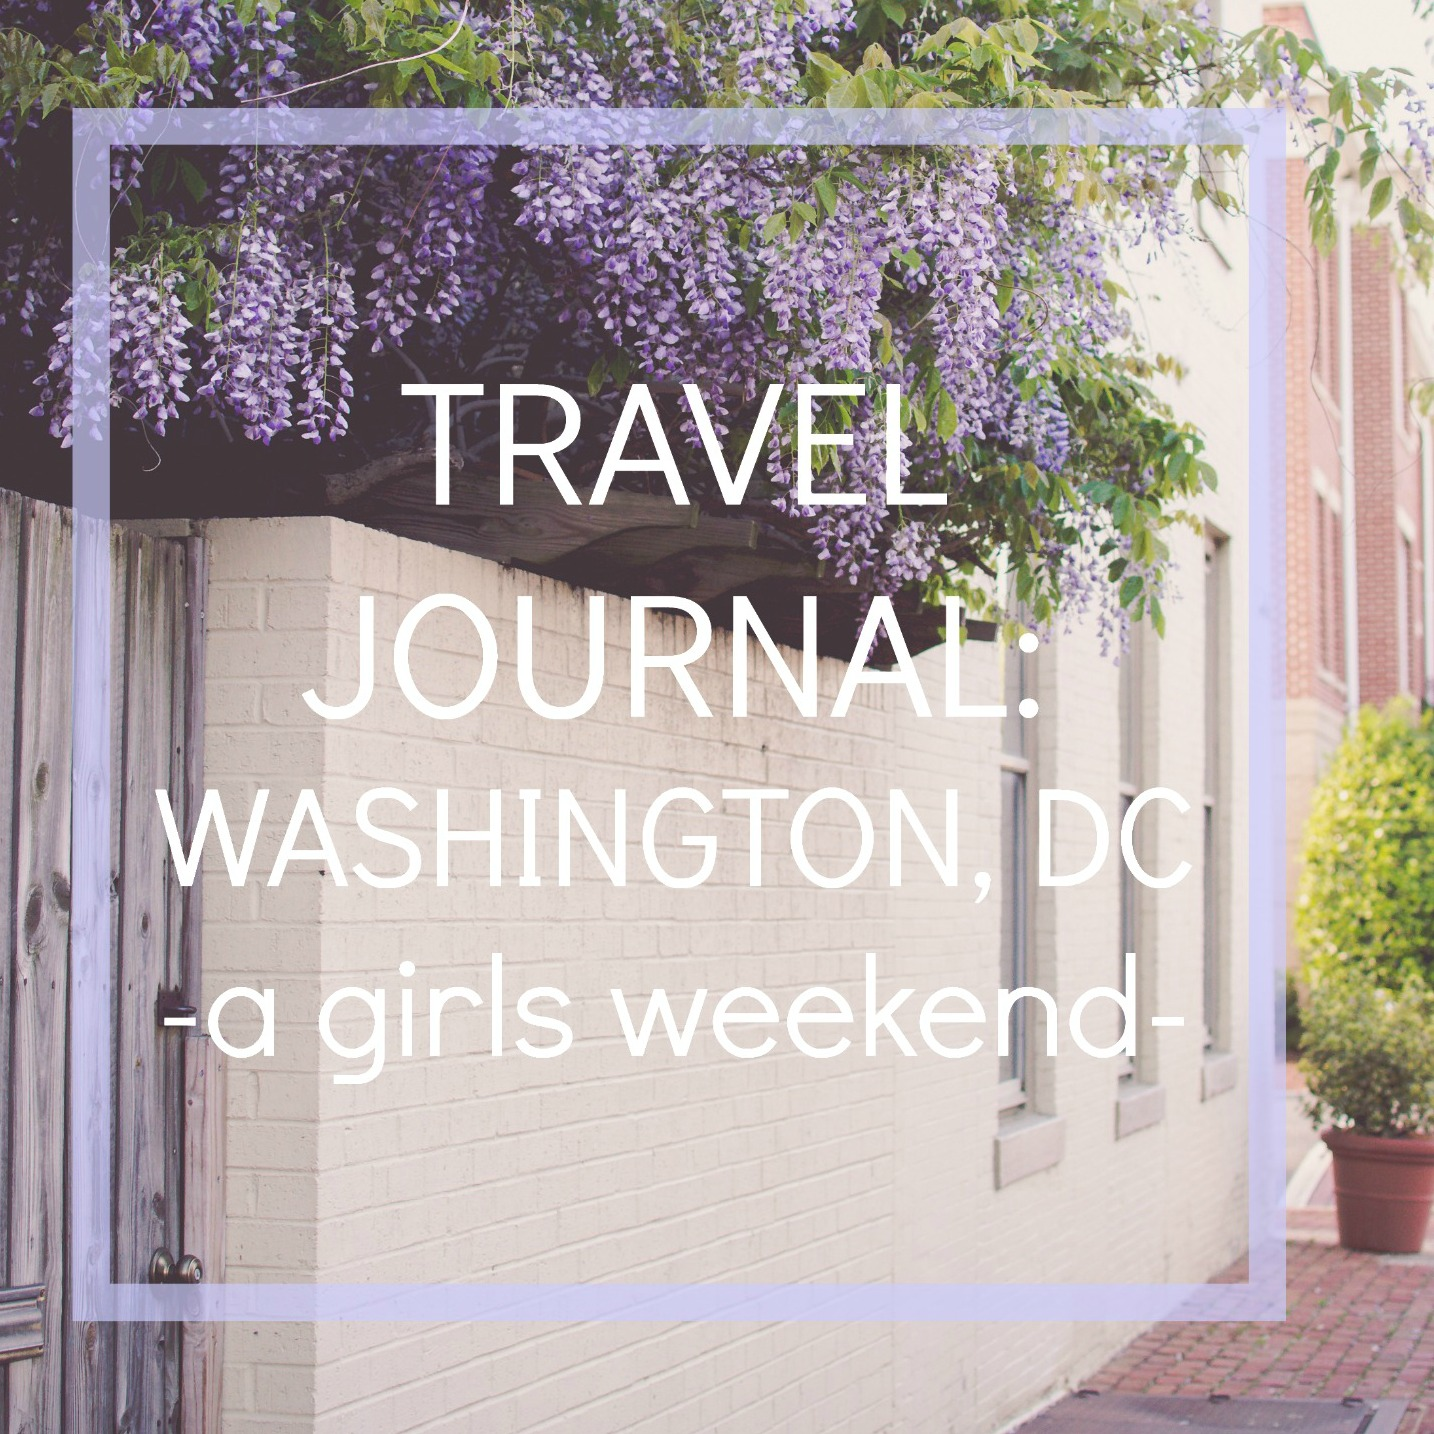 Travel Journal - A girls weekend in washington, D.C.